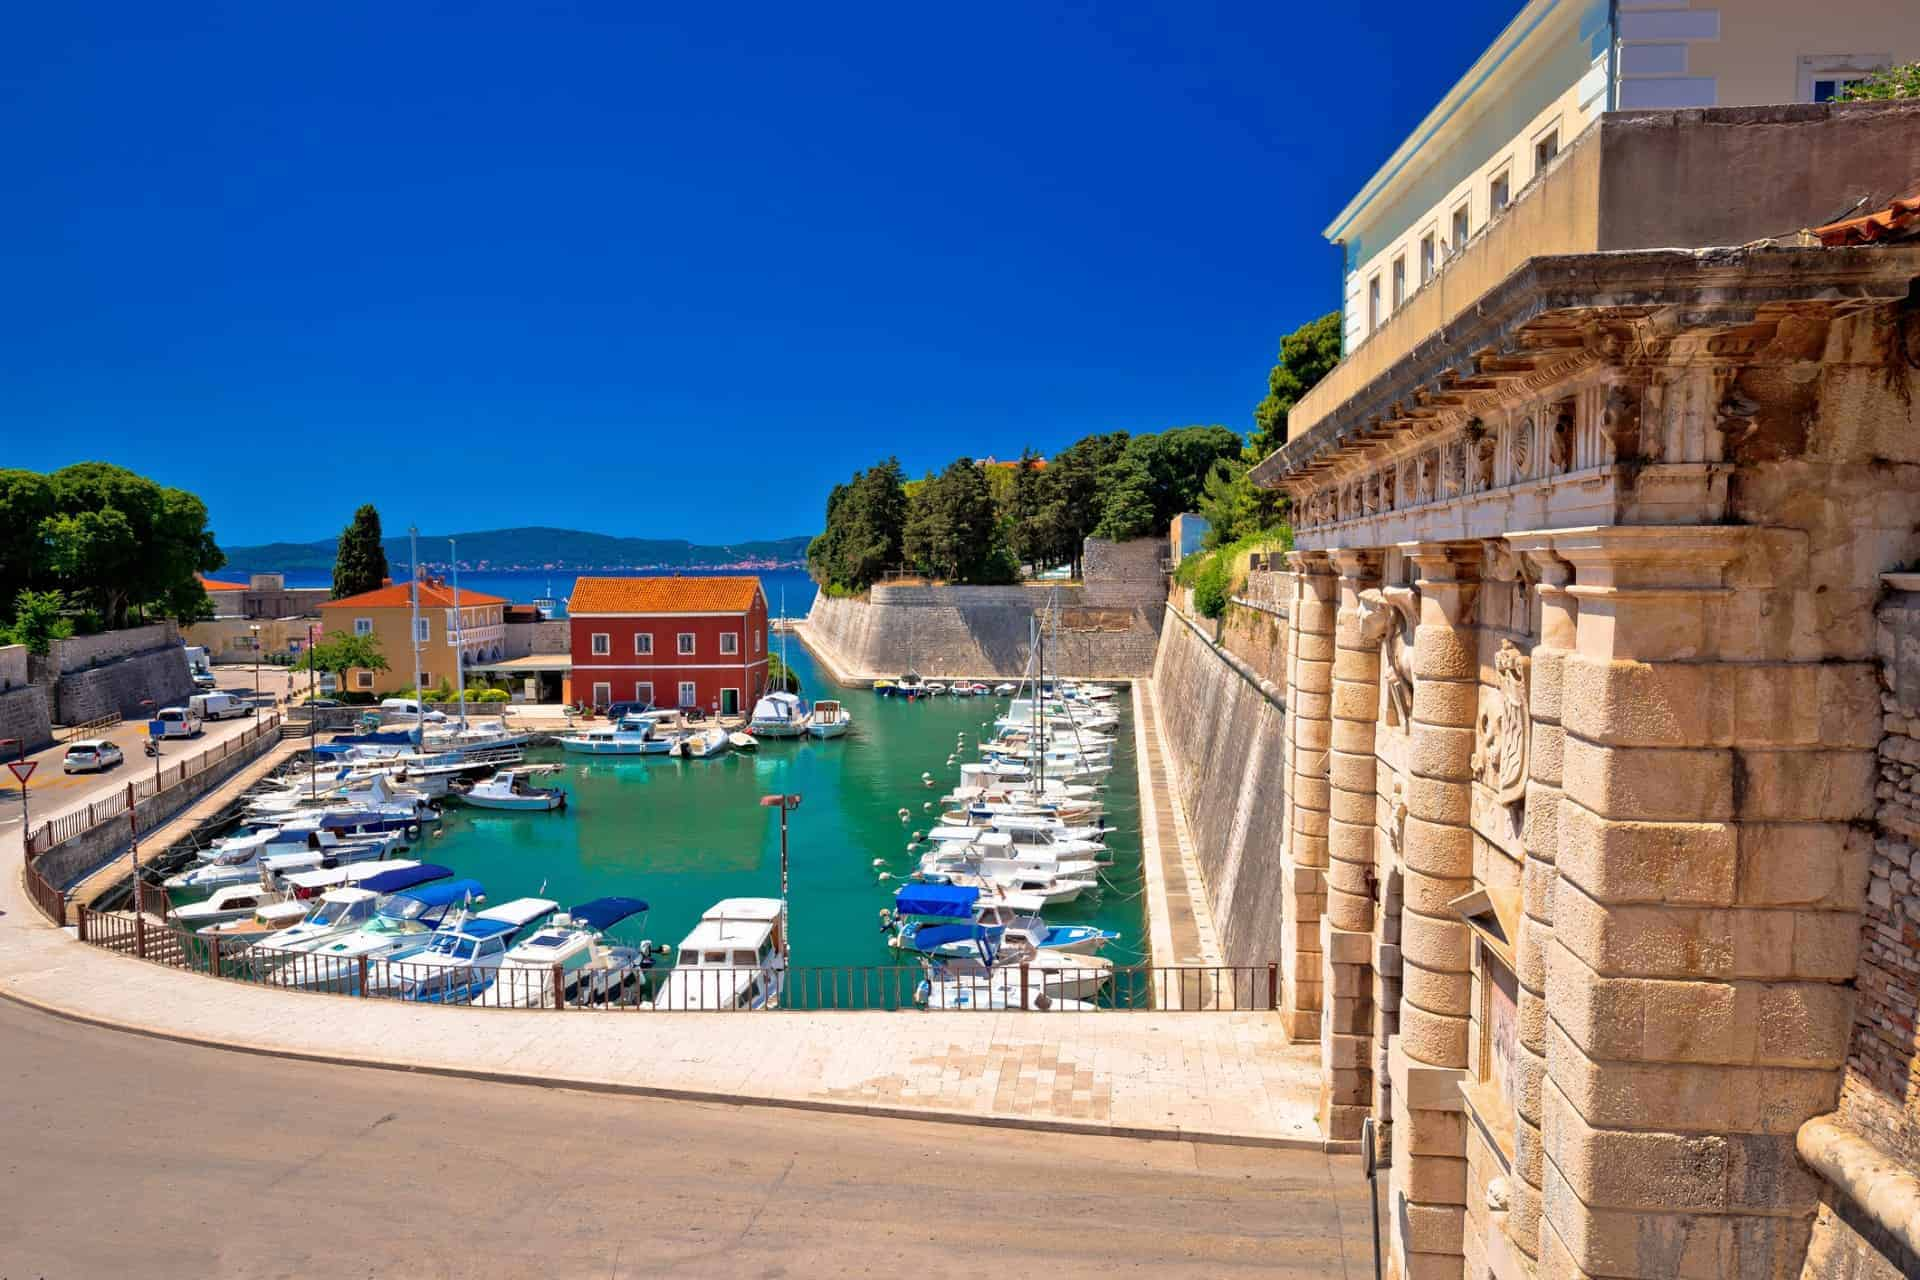 City gate to the walled city of Zadar in Croatia and a view of the harbour